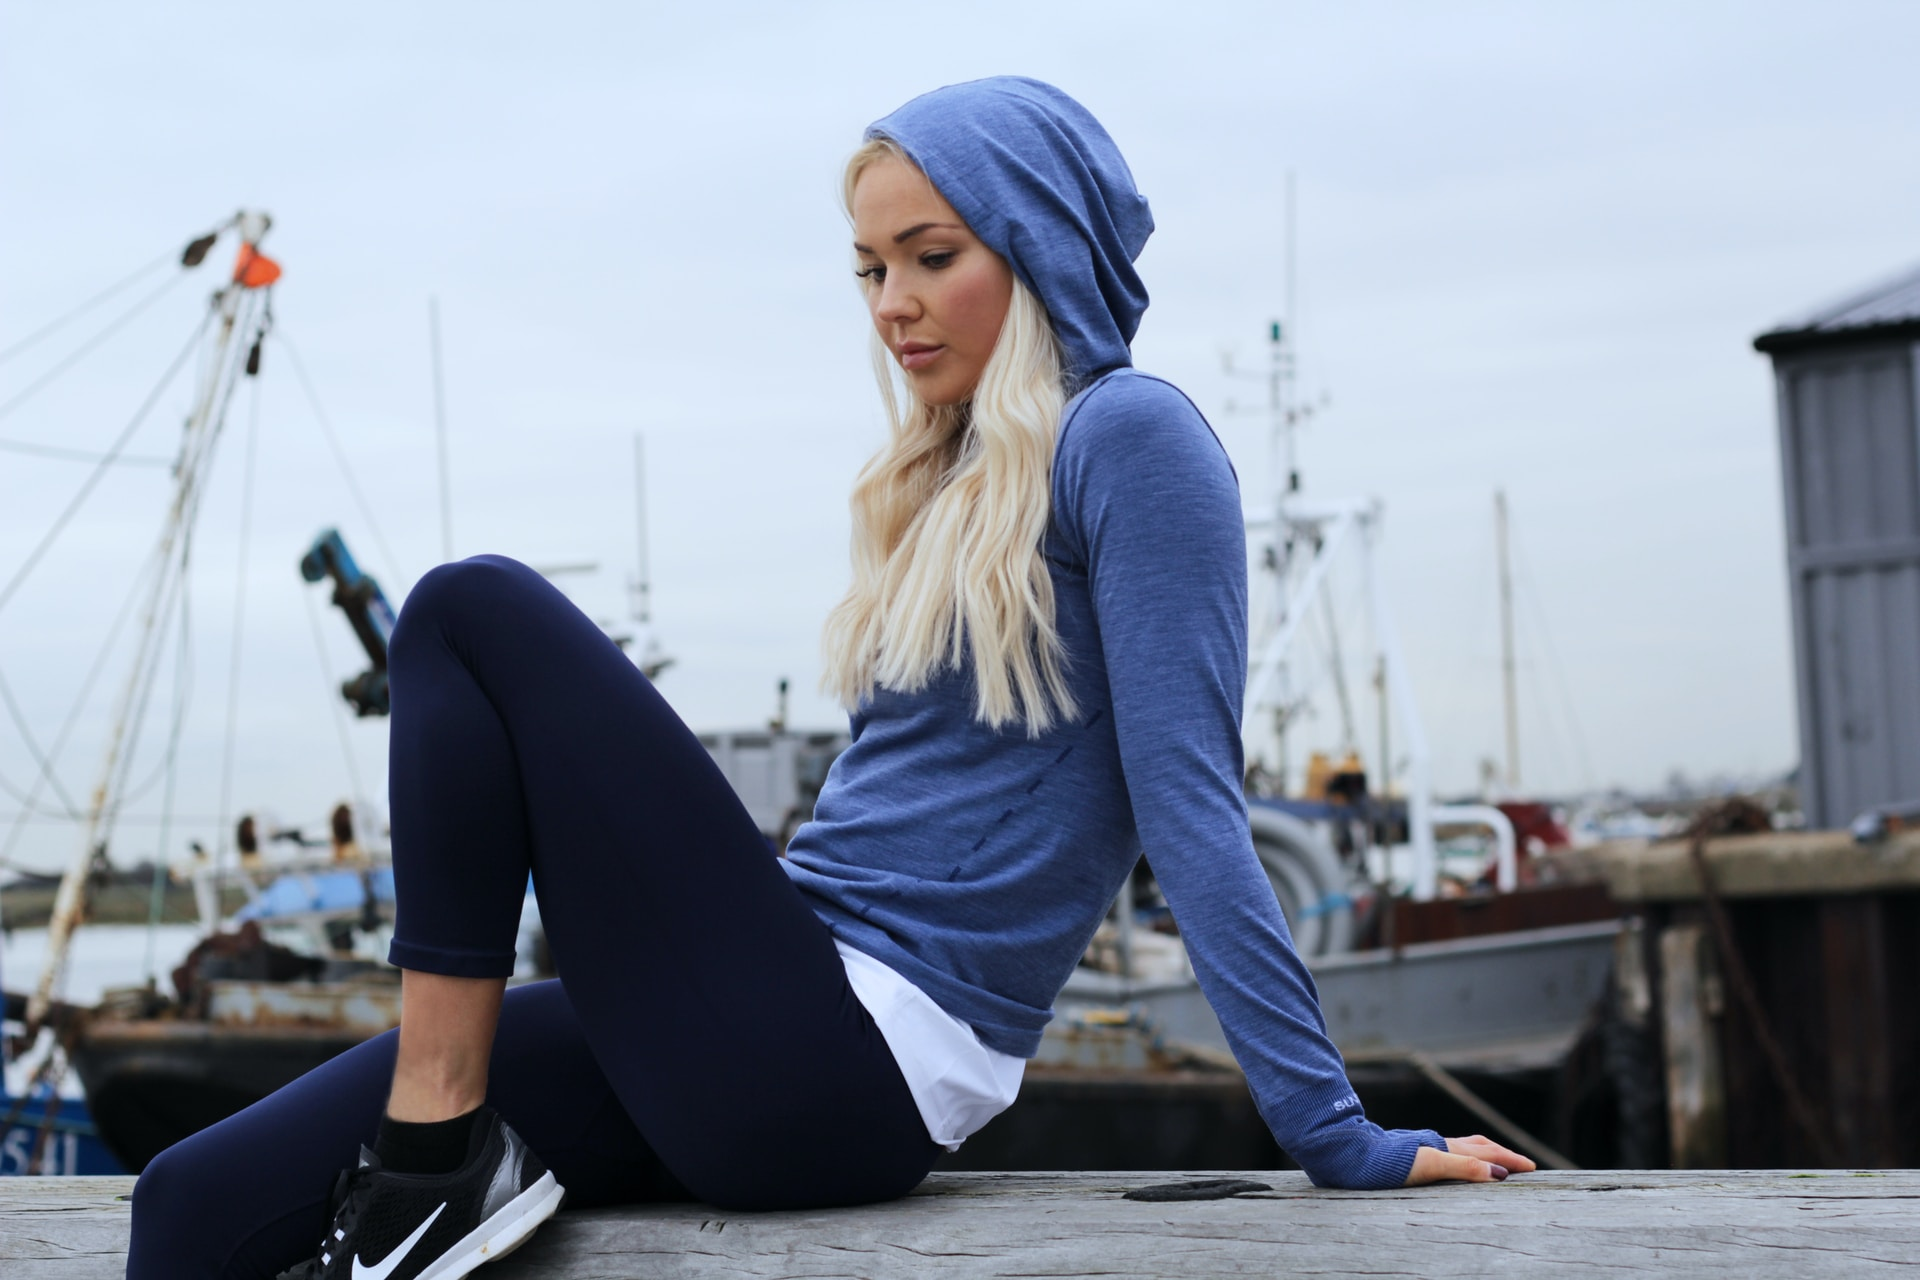 woman in blue hoodie and black leggings lounging at gray concrete surface